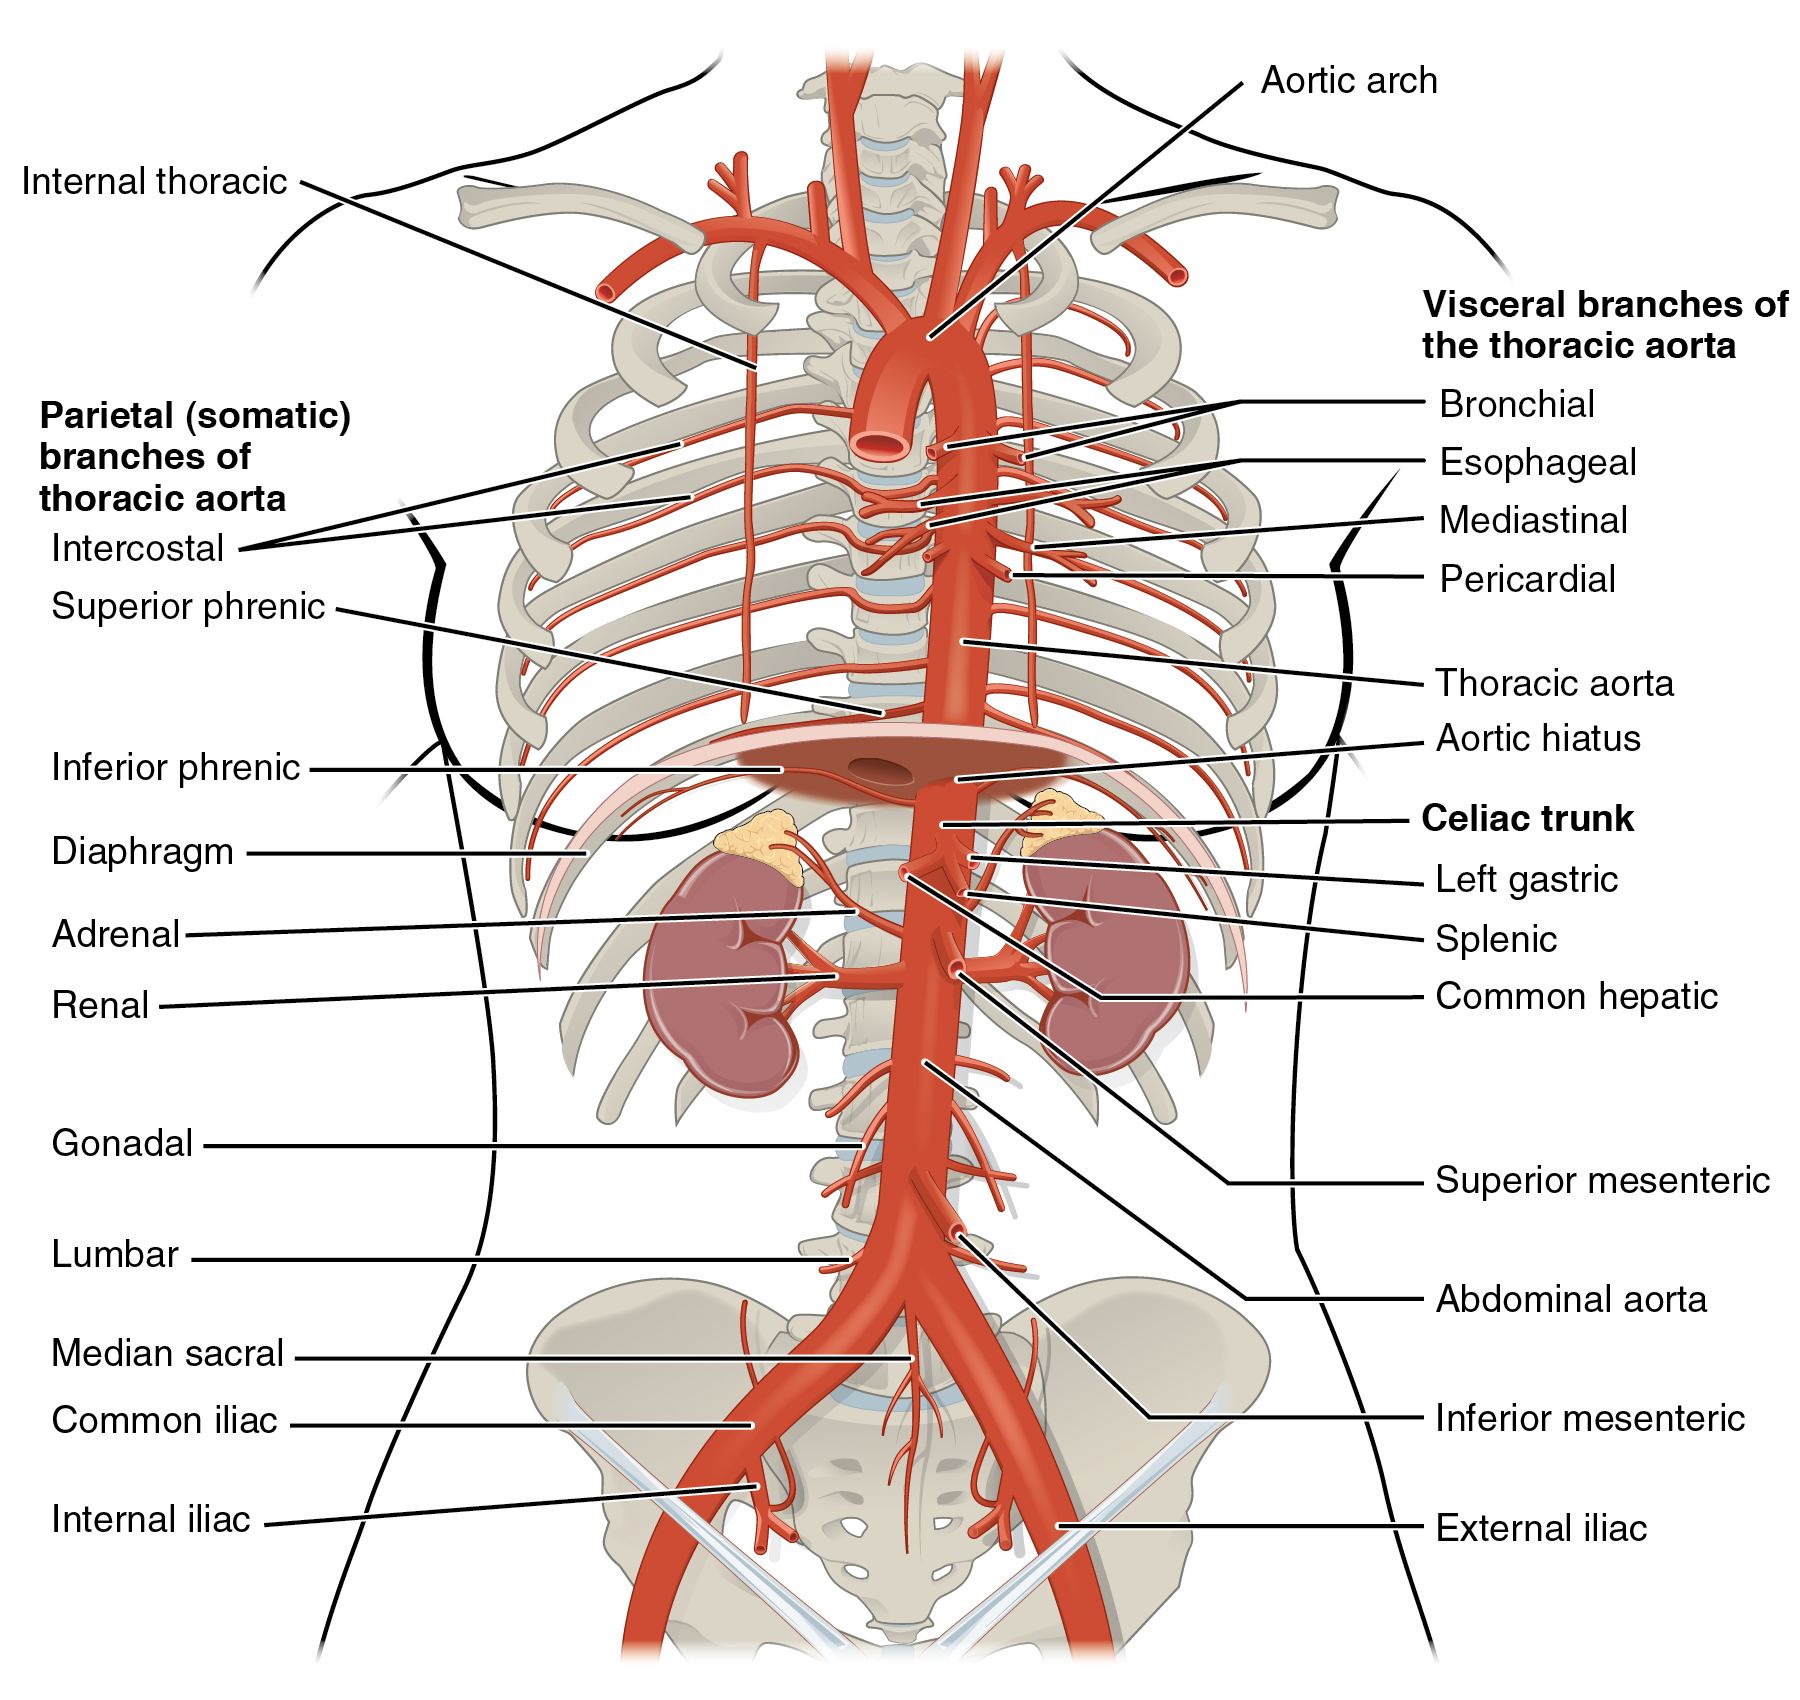 This diagram shows the arteries in the thoracic and abdominal cavity.